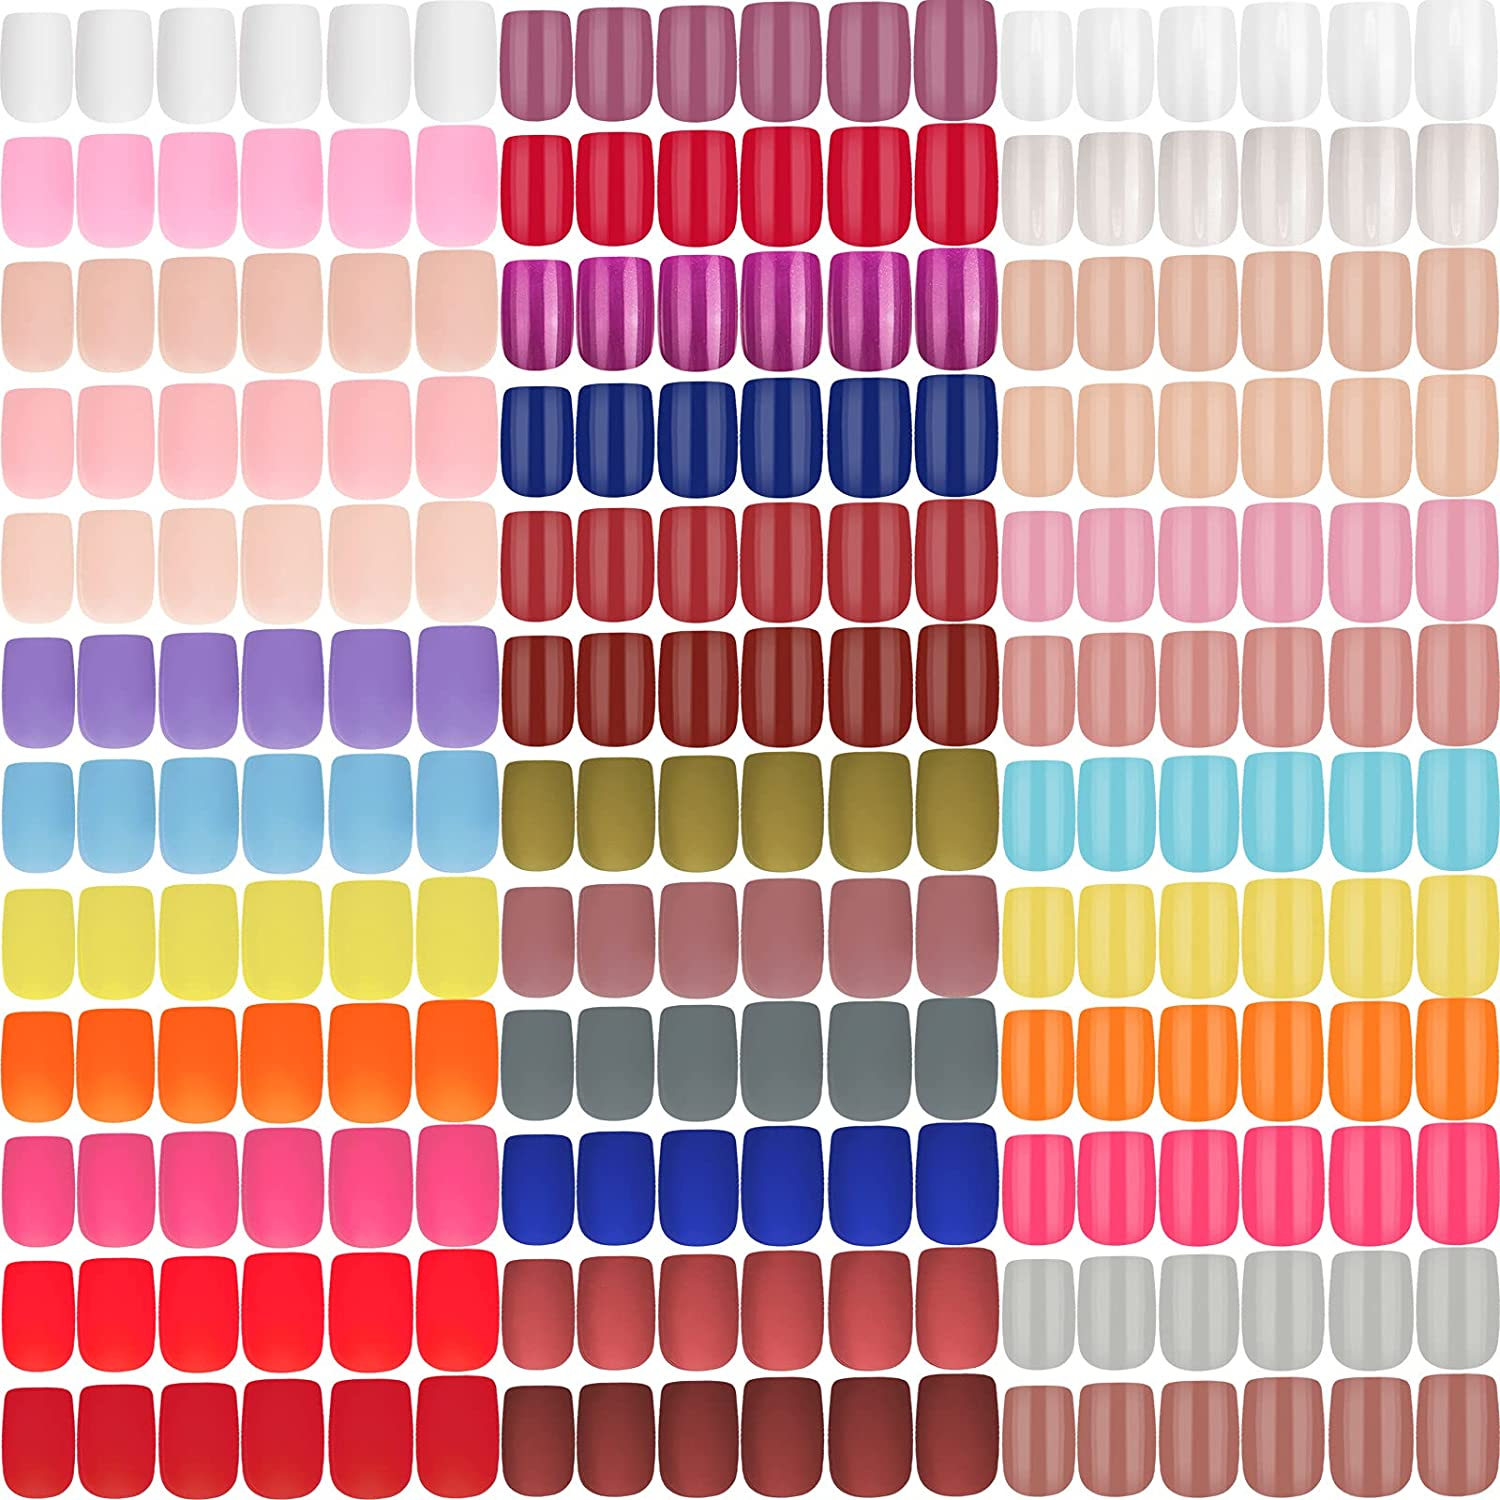 Year-end annual account 864 Pieces 36 Sets New products, world's highest quality popular! Medium Square Gloss Press on Nails Squ